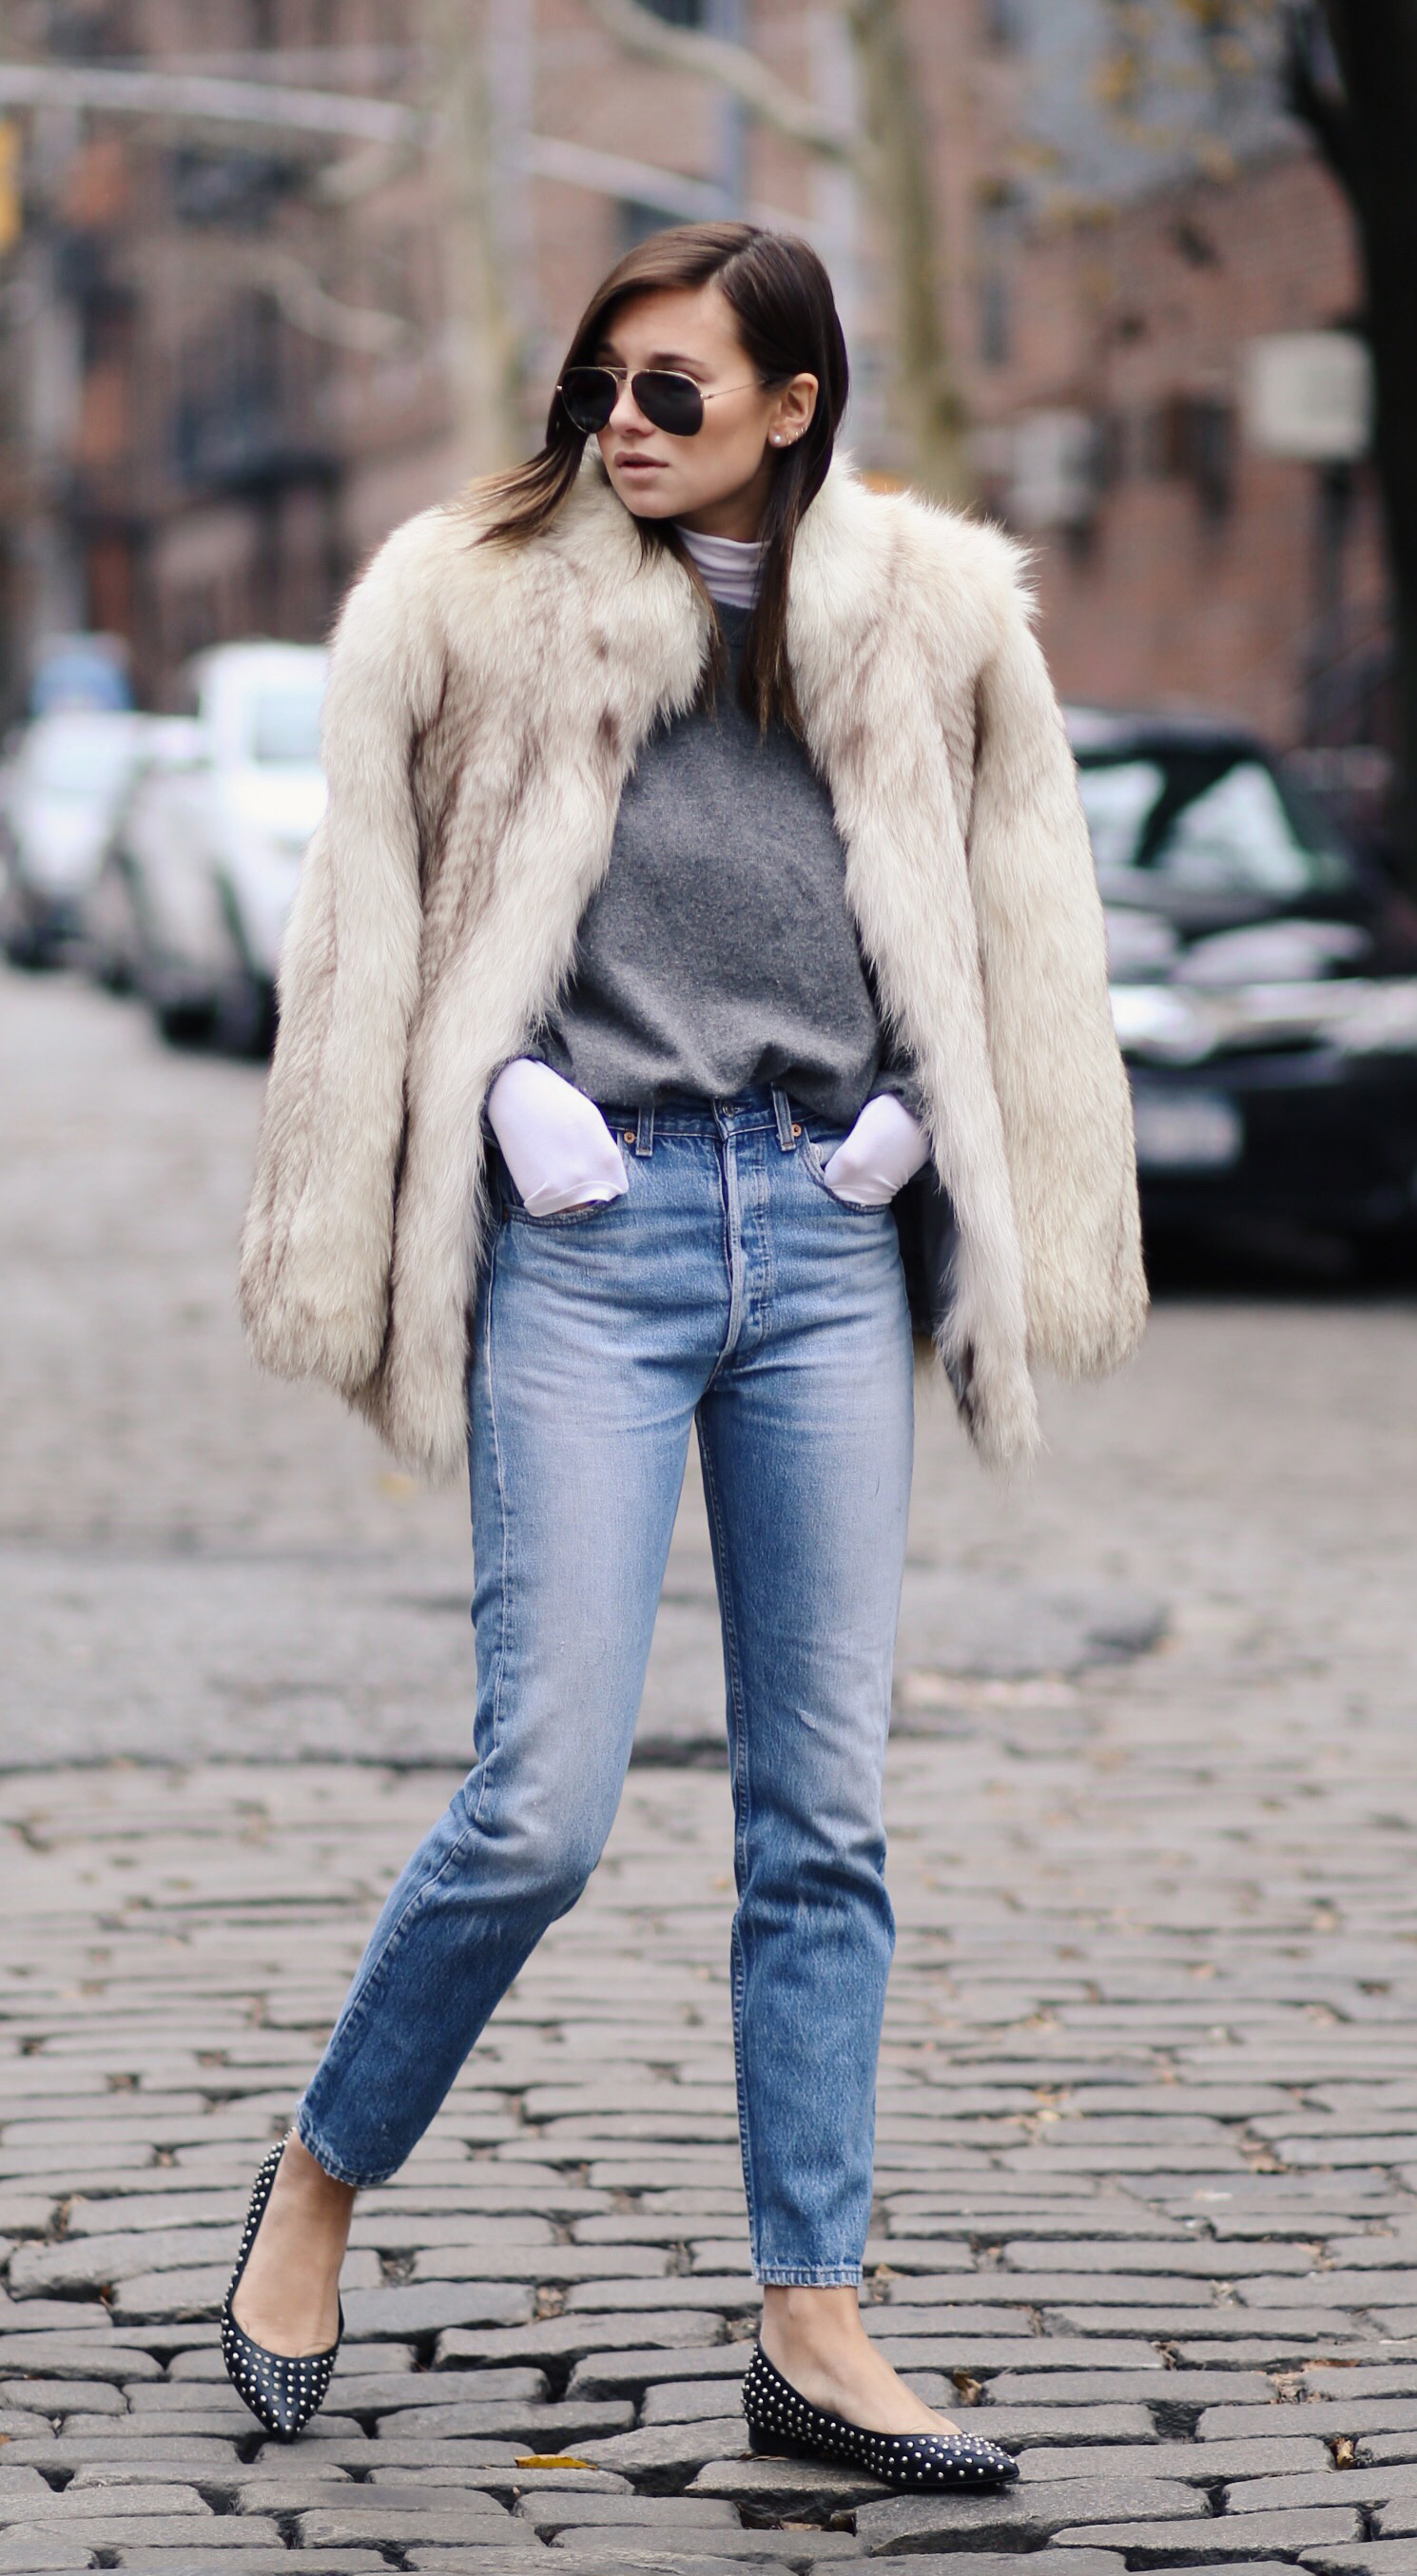 588787cf5d49 Danielle Bernstein is wearing a vintage fuzzy faux fur coat